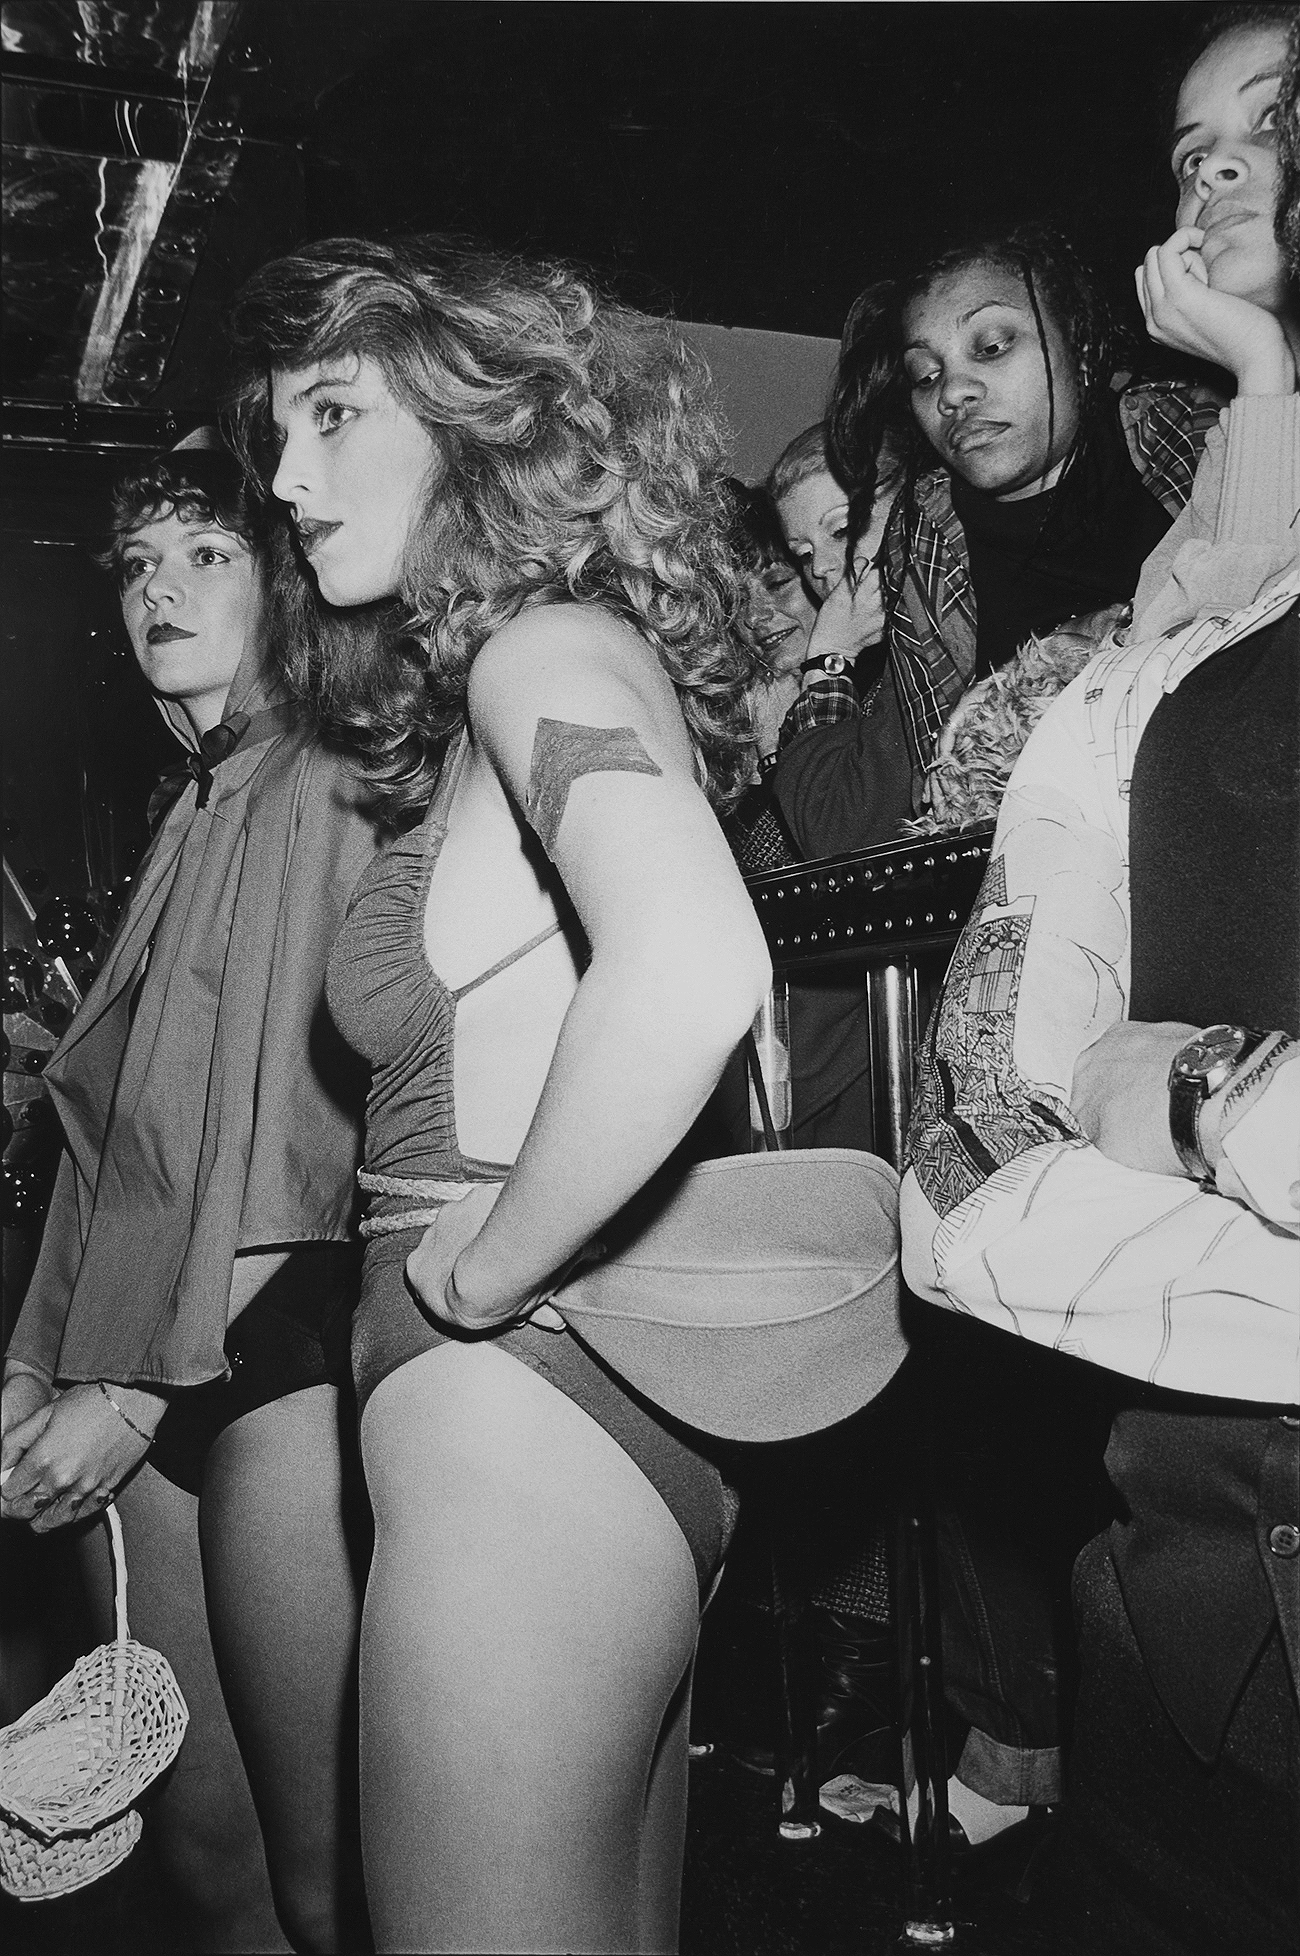 Tony_Ward_photography_early_work_Night_Fever_portfolio_1970's_erotic_dirty_dancing_couples_grinding_fashion_show